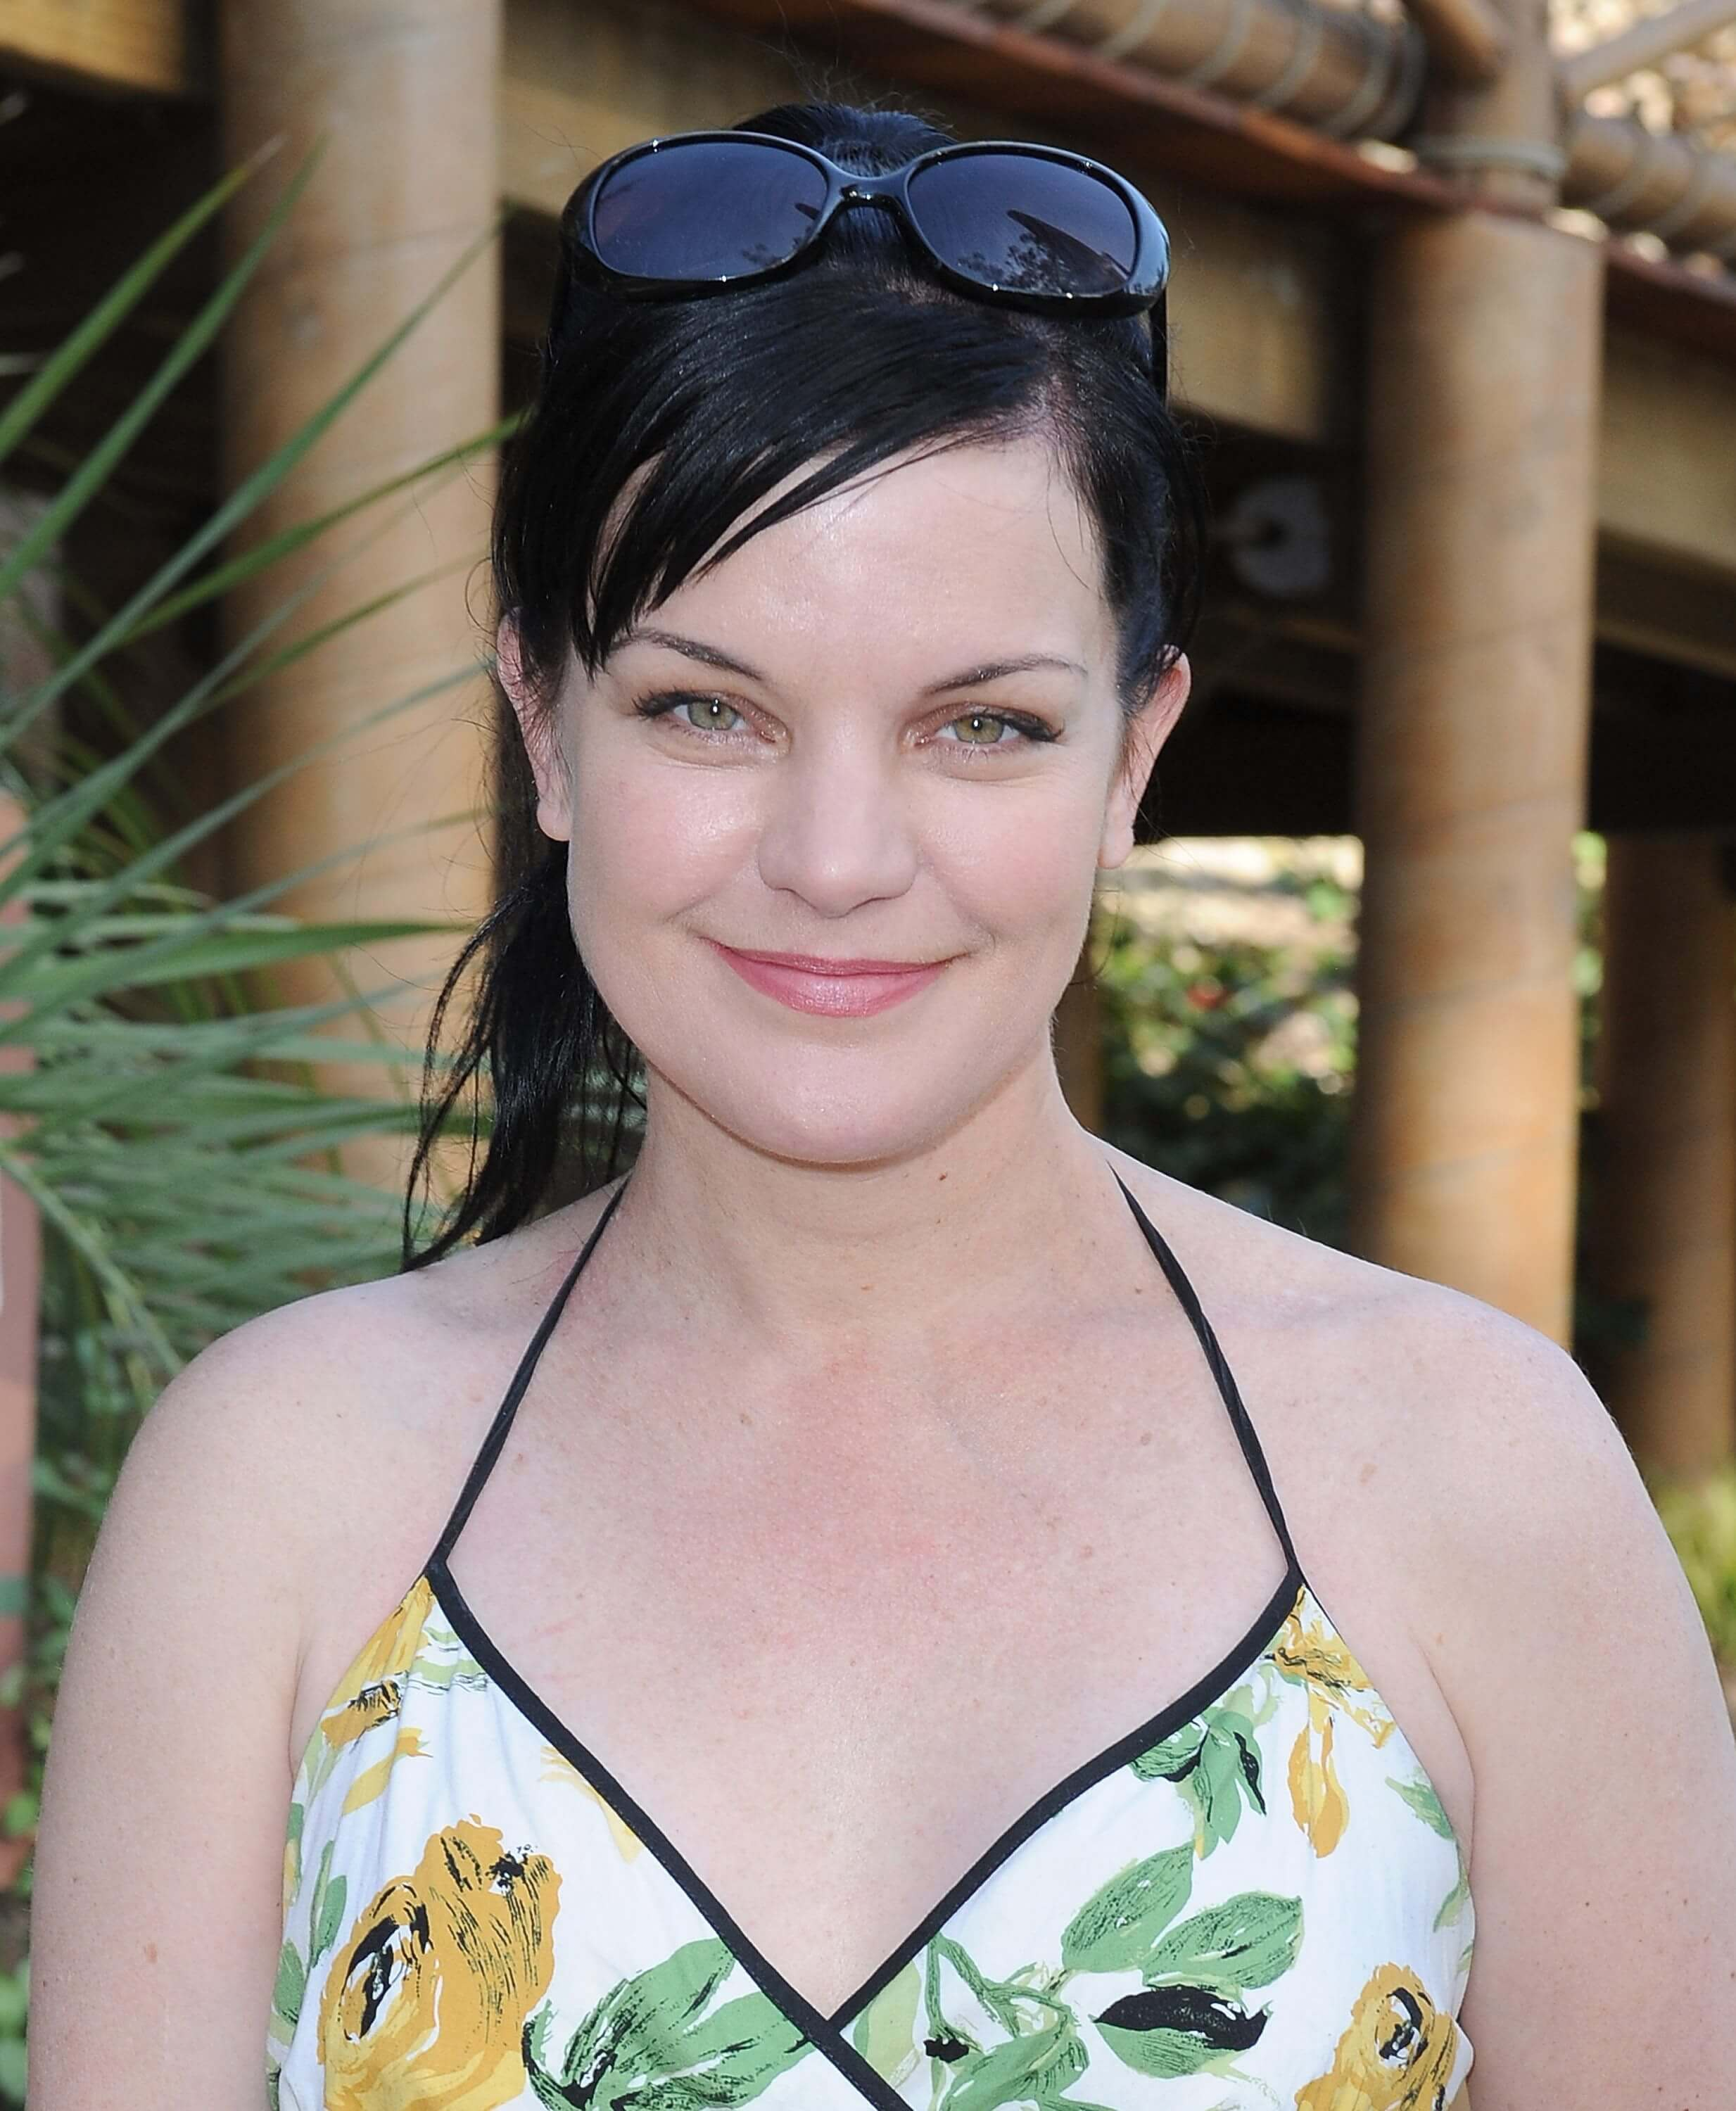 pauley perrette hot skin